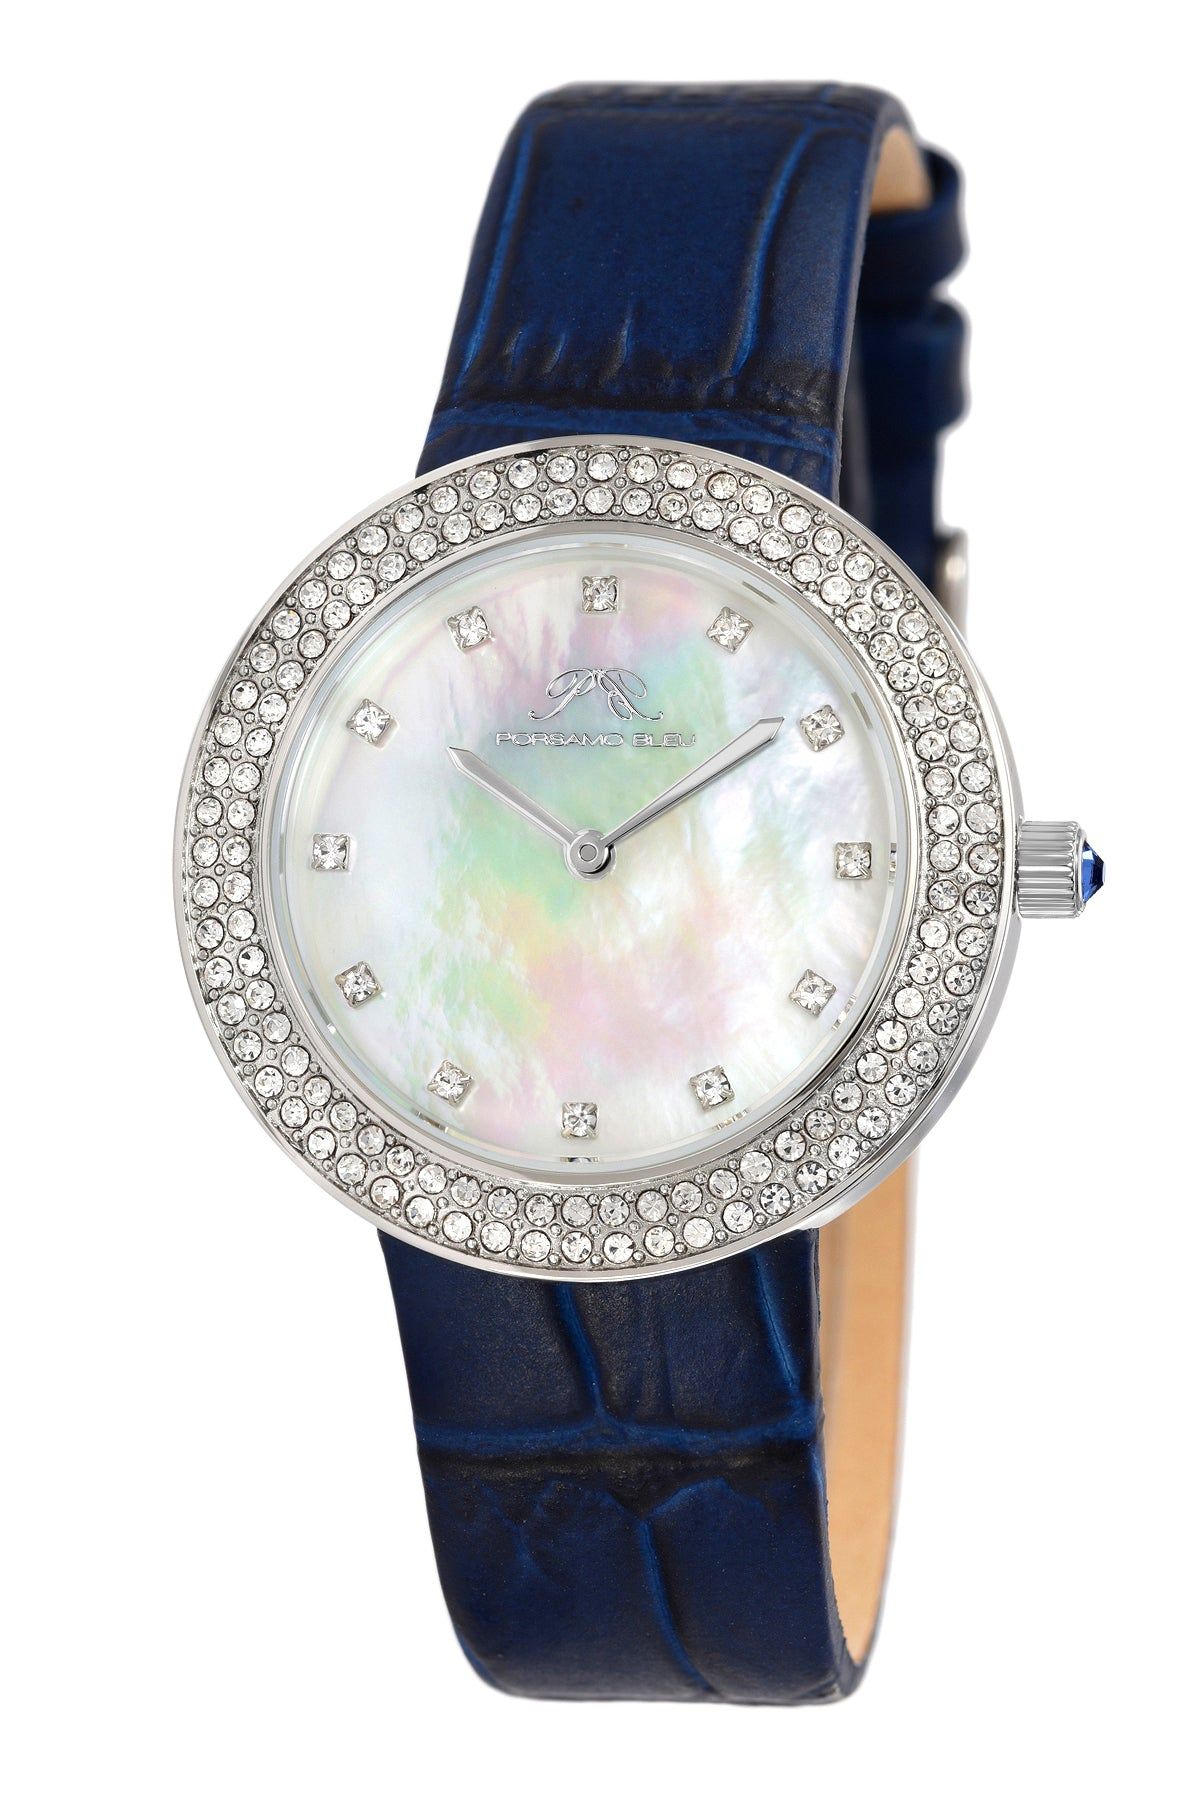 Porsamo Bleu Larissa luxury women's watch, genuine leather band, crystal inlaid bezel, white, silver,blue 892ALAL